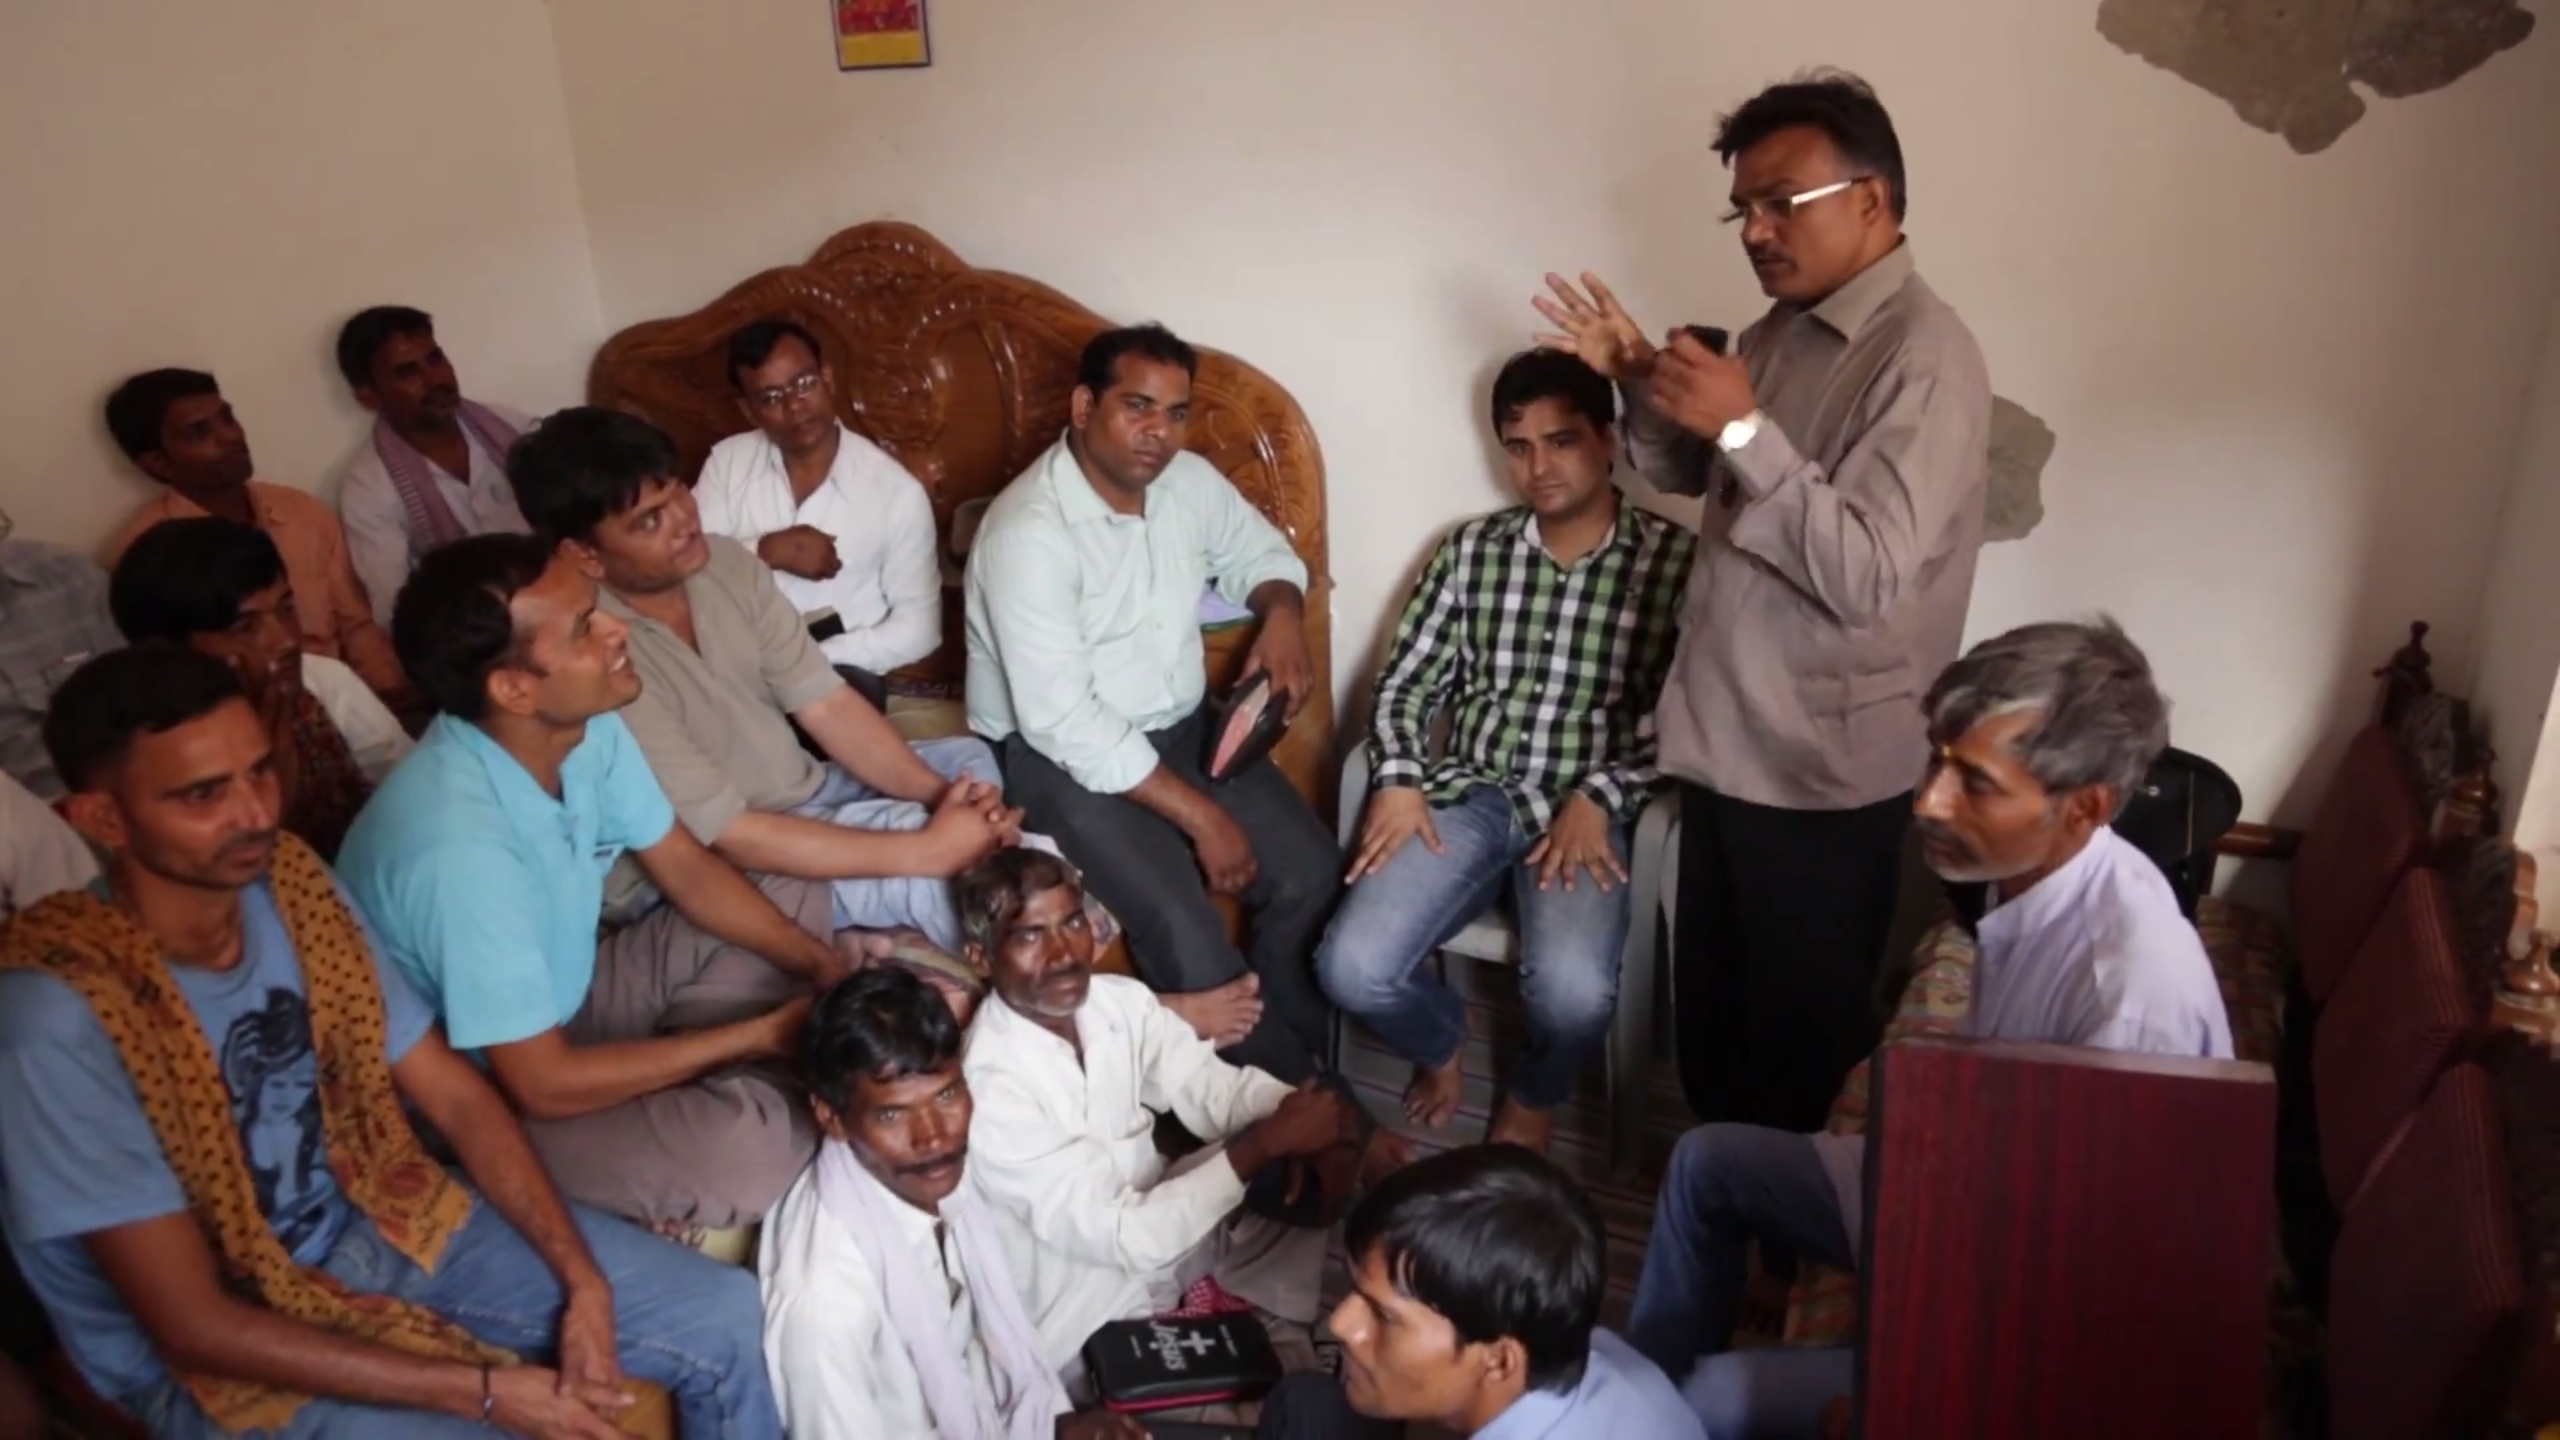 Udaan Radio producer & pastor Prakash meets a listener group